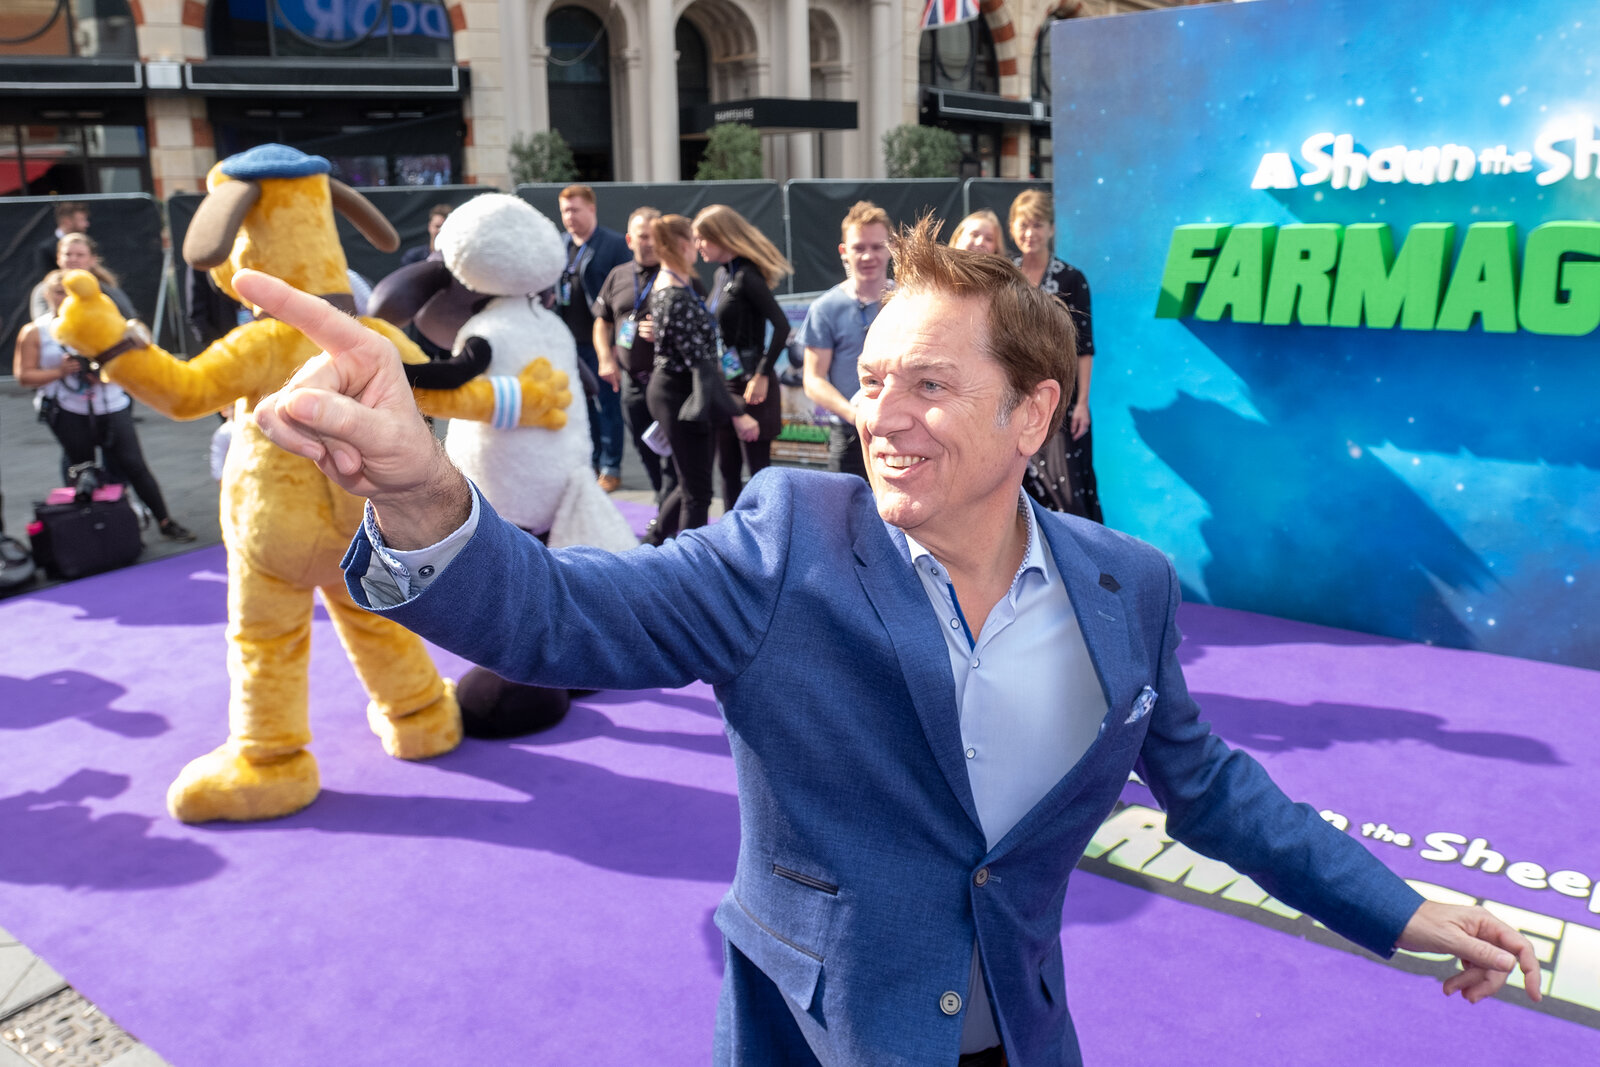 Shaun The Sheep Movie - Farmageddon Premiere